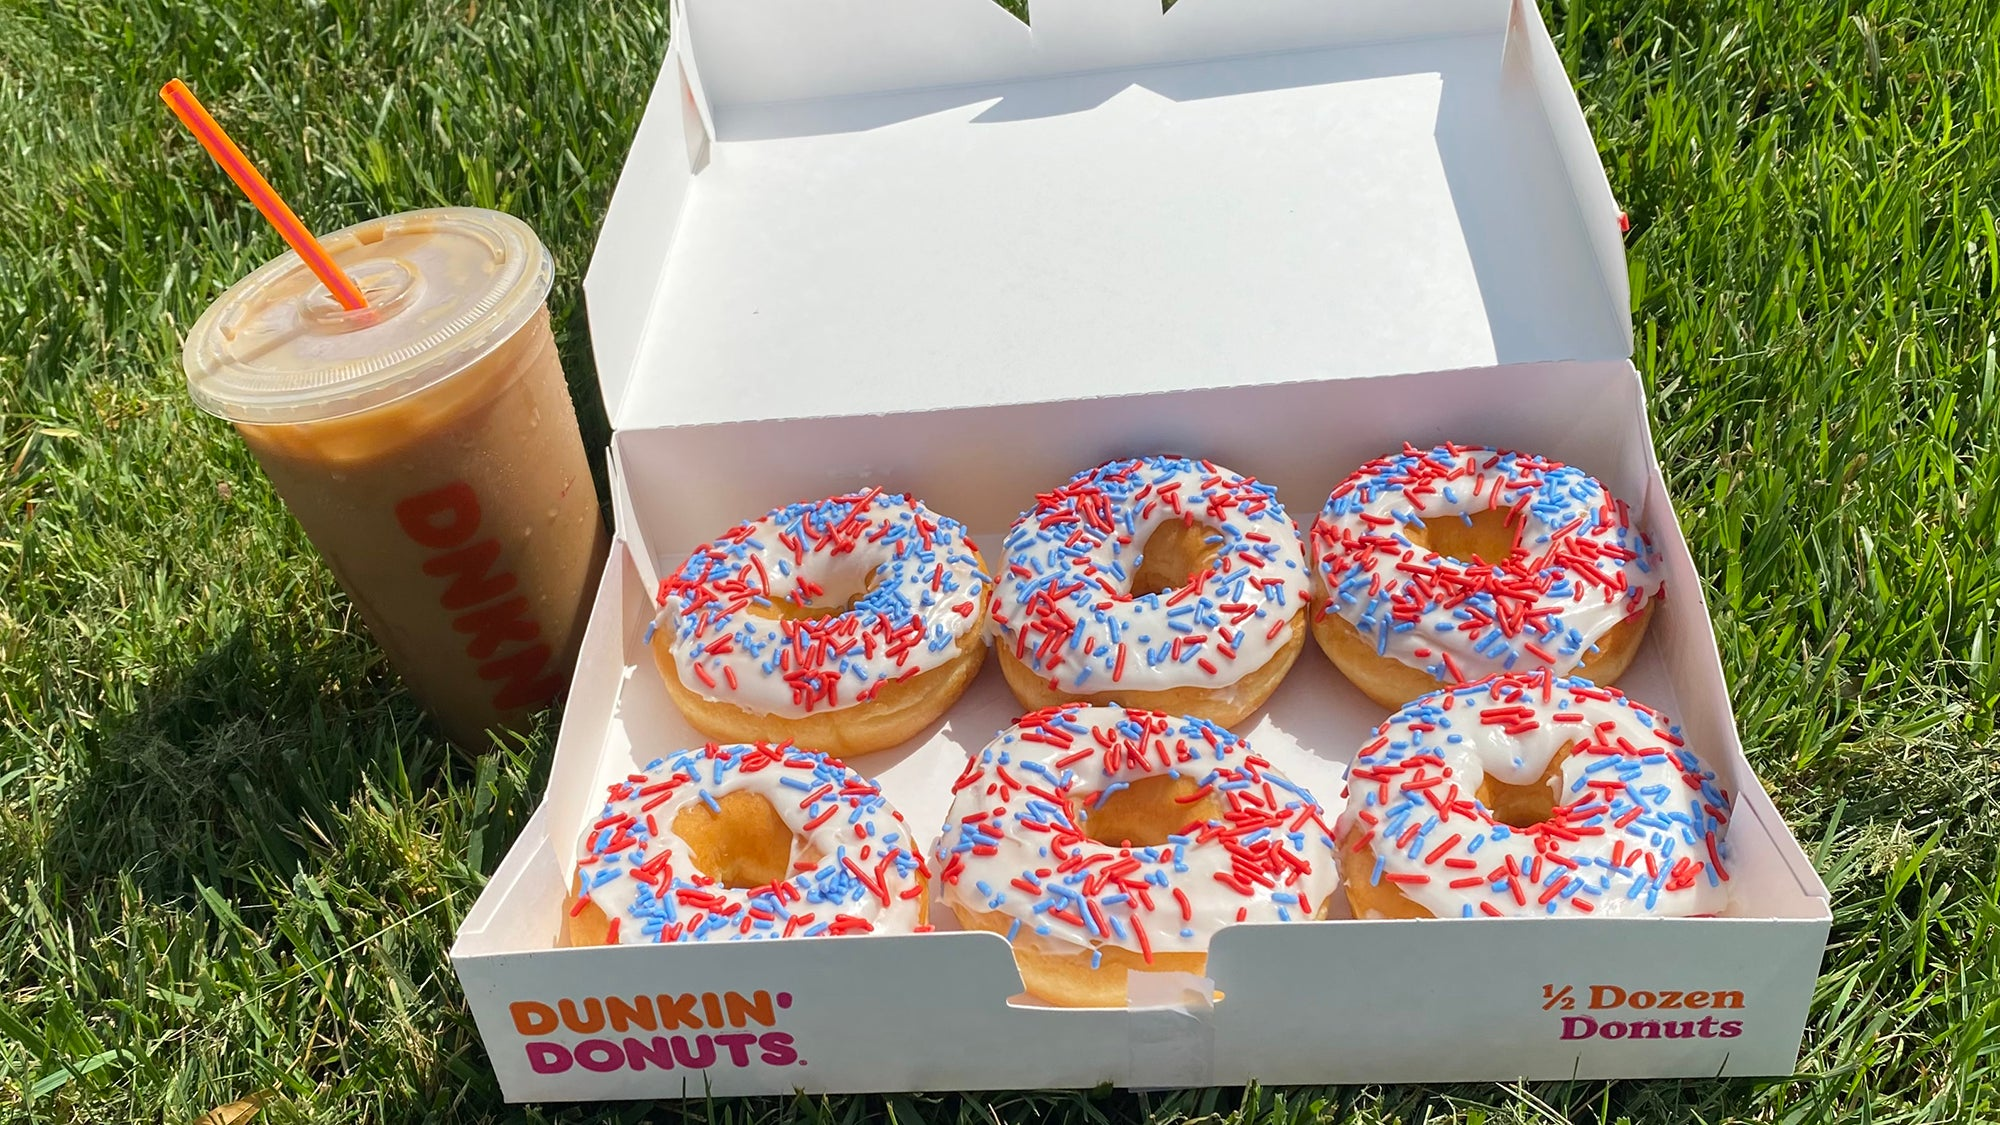 Dunkin' launched a limited-edition Patriots-inspired doughnut 1